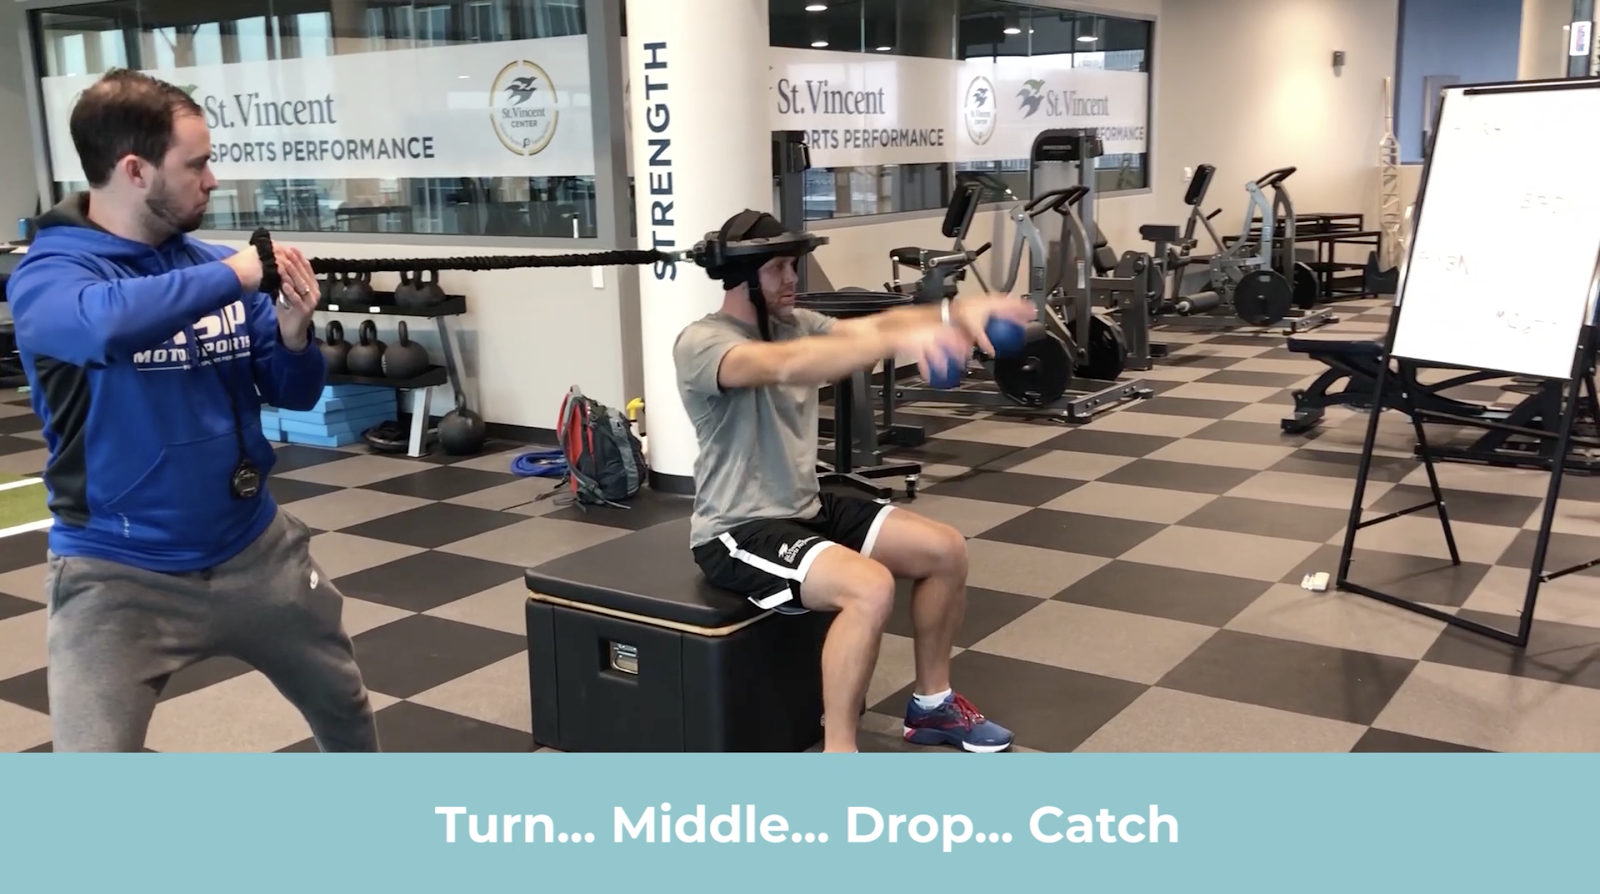 IndyCar driver Ed Carpenter training with Iron Neck at SVSP, doing Seated Iron Neck Memory Recall + Reaction Speed (Medball drop variation)